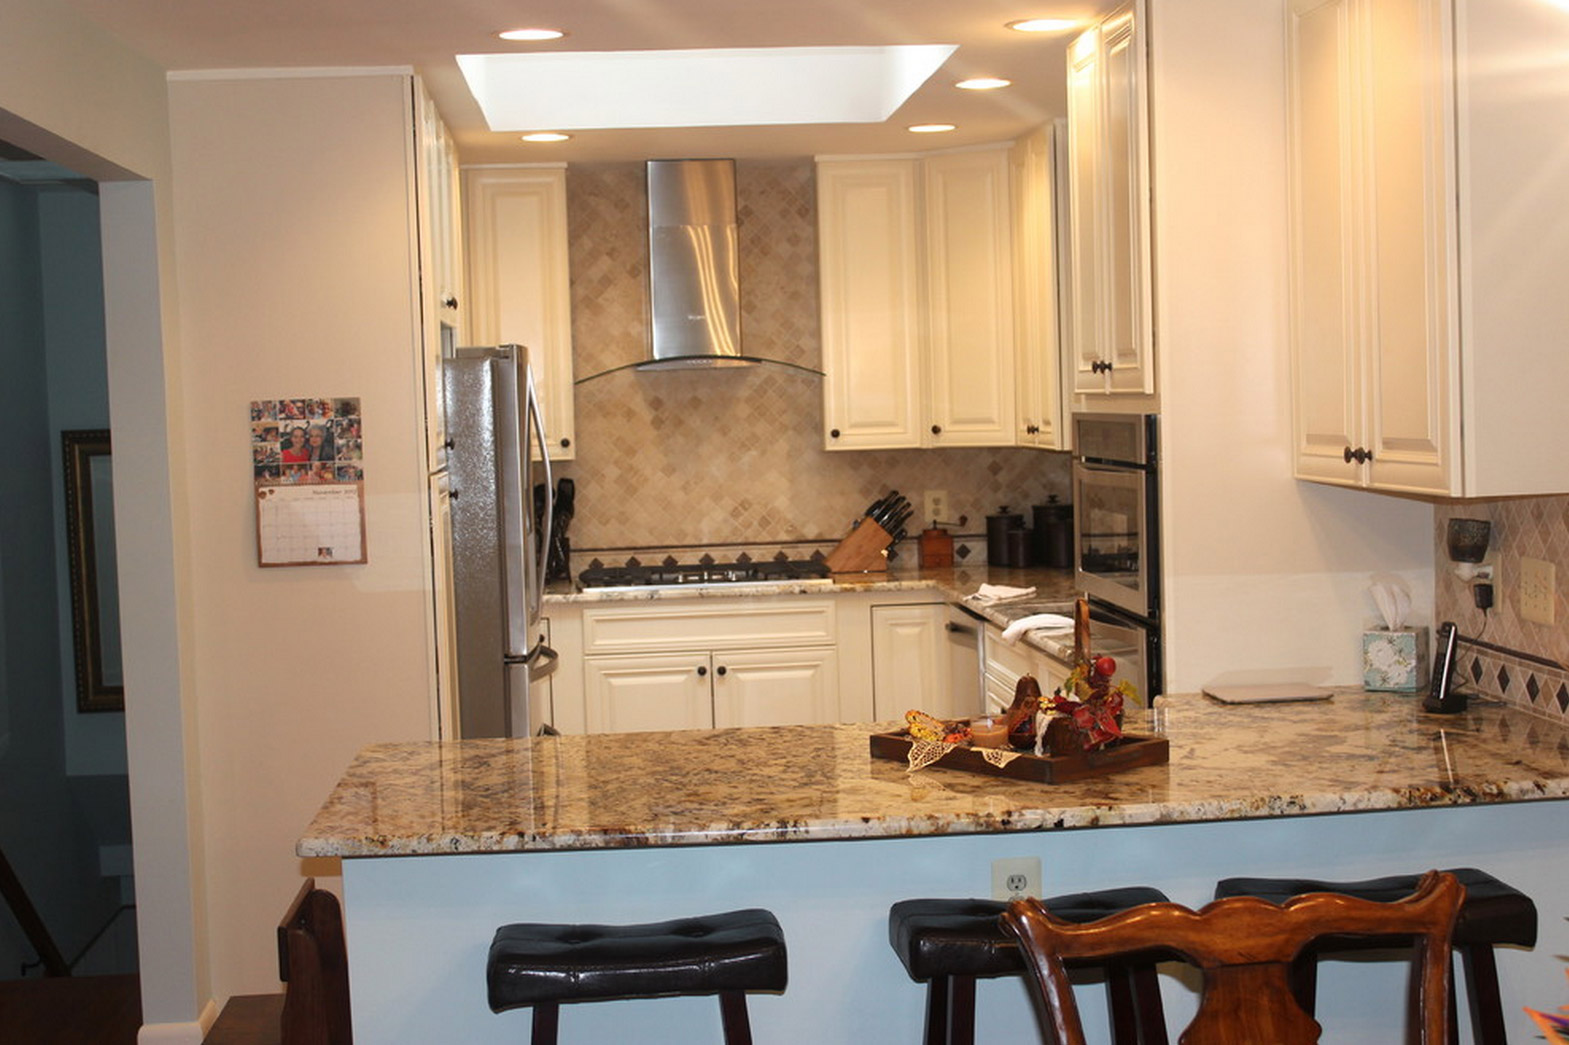 Modish Kitchen Remodeling In Northern VA Designs That Will Impress - Kitchen remodeling northern virginia